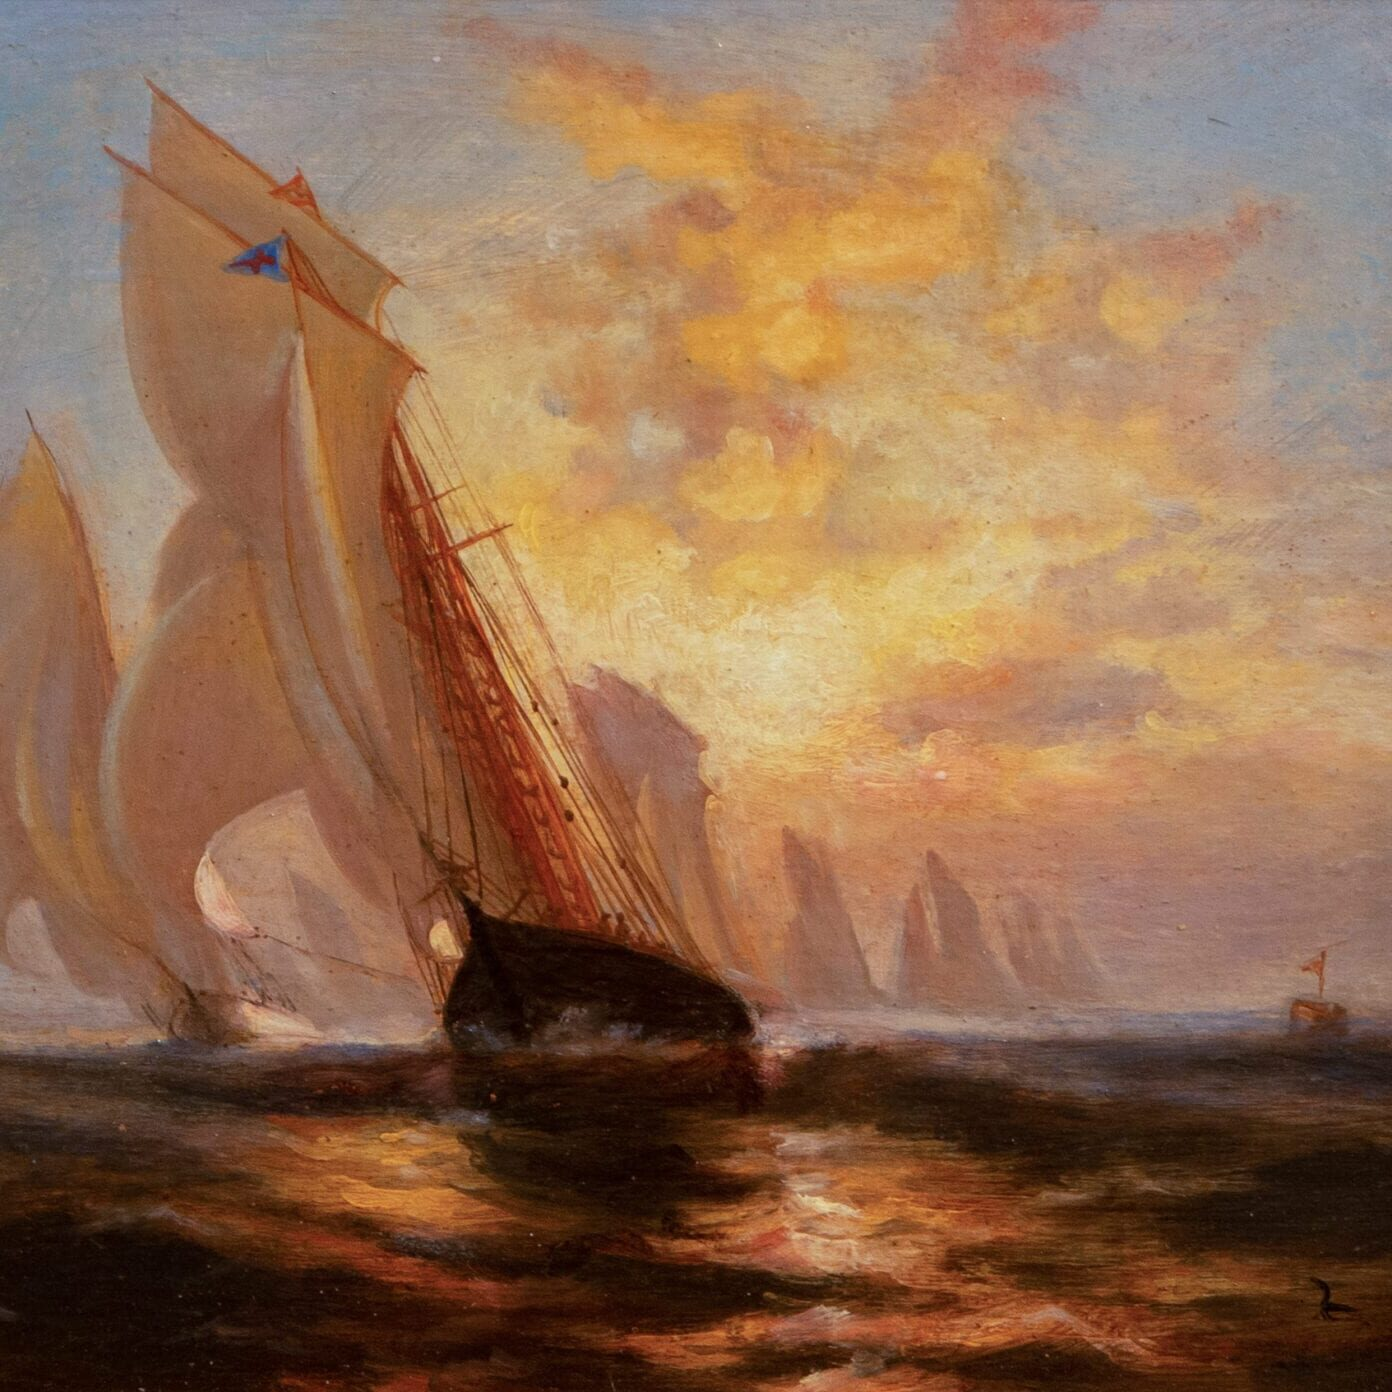 """Madeline"" 1876 America's Cup Defender (After Edward Moran) (MKE)"